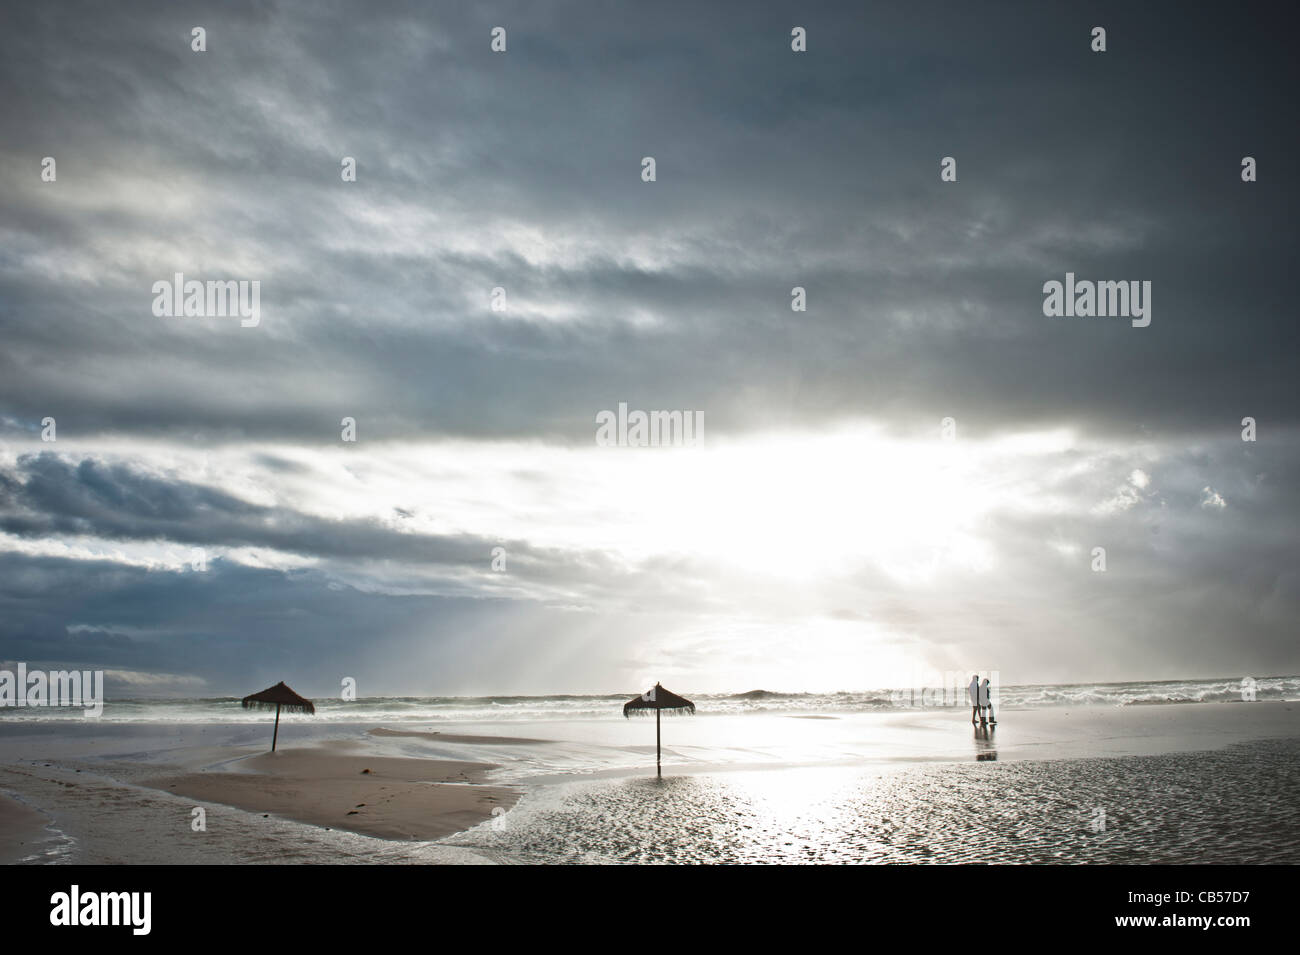 A couple walking on a deserted beach with stormy weather, Tarifa, Andalusia, Spain - Stock Image